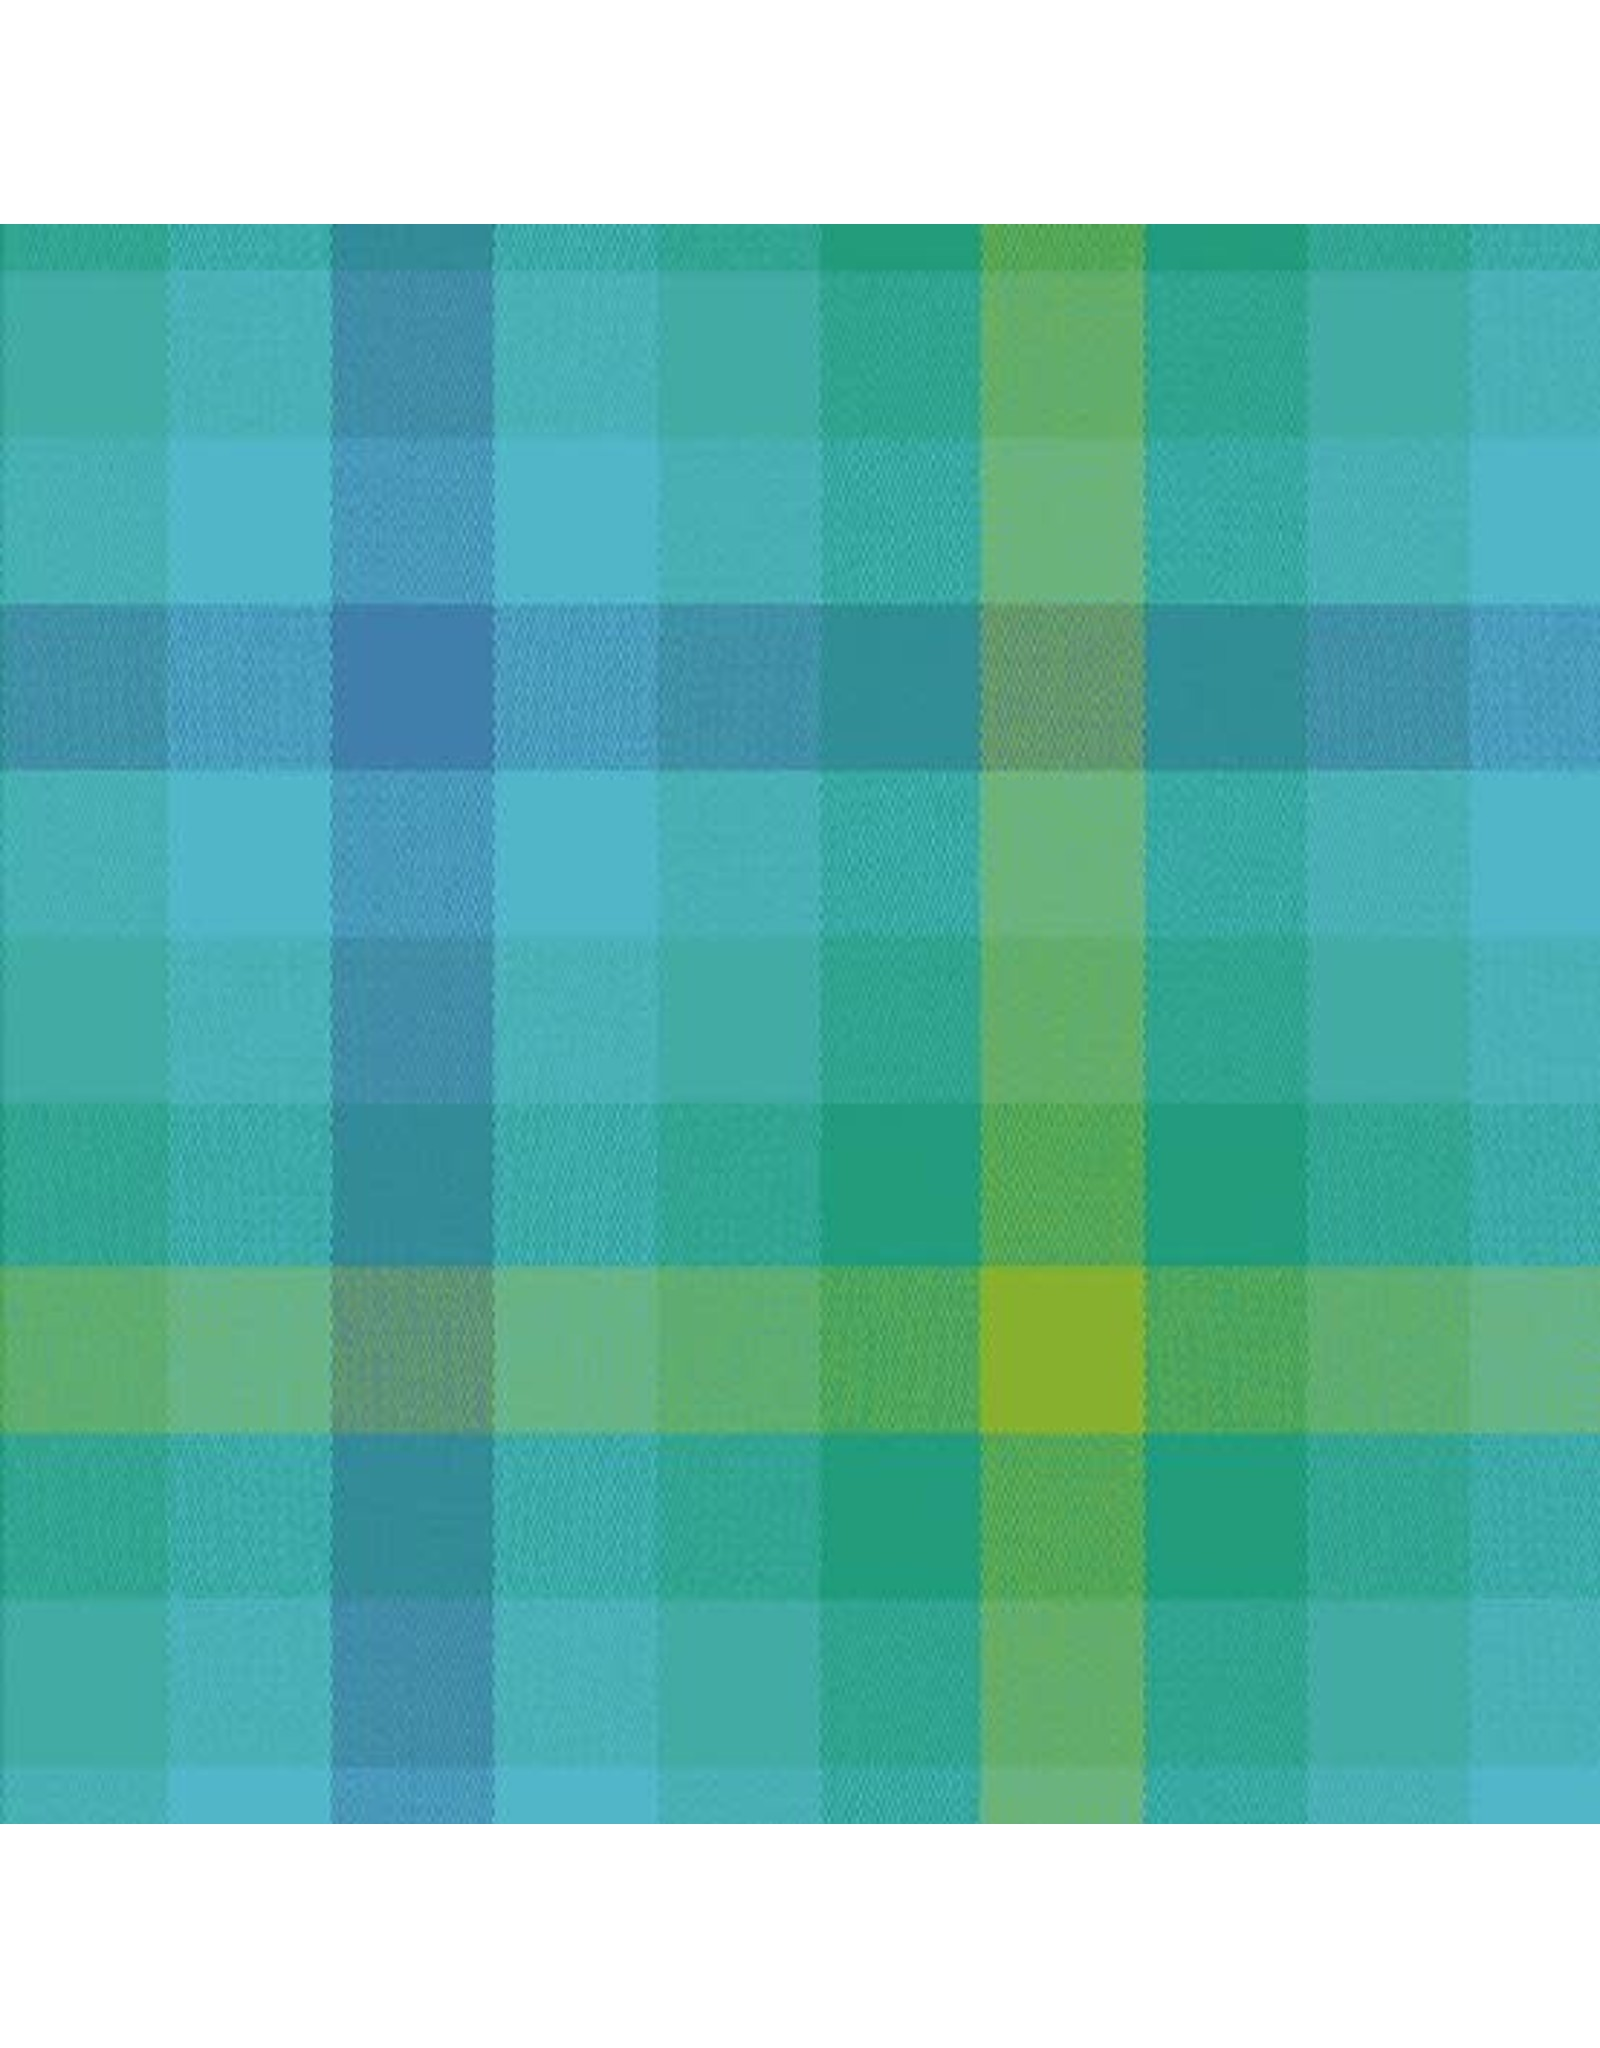 Alison Glass Kaleidoscope Stripes and Plaids, Plaid in Teal, Fabric Half-Yards WV-9541